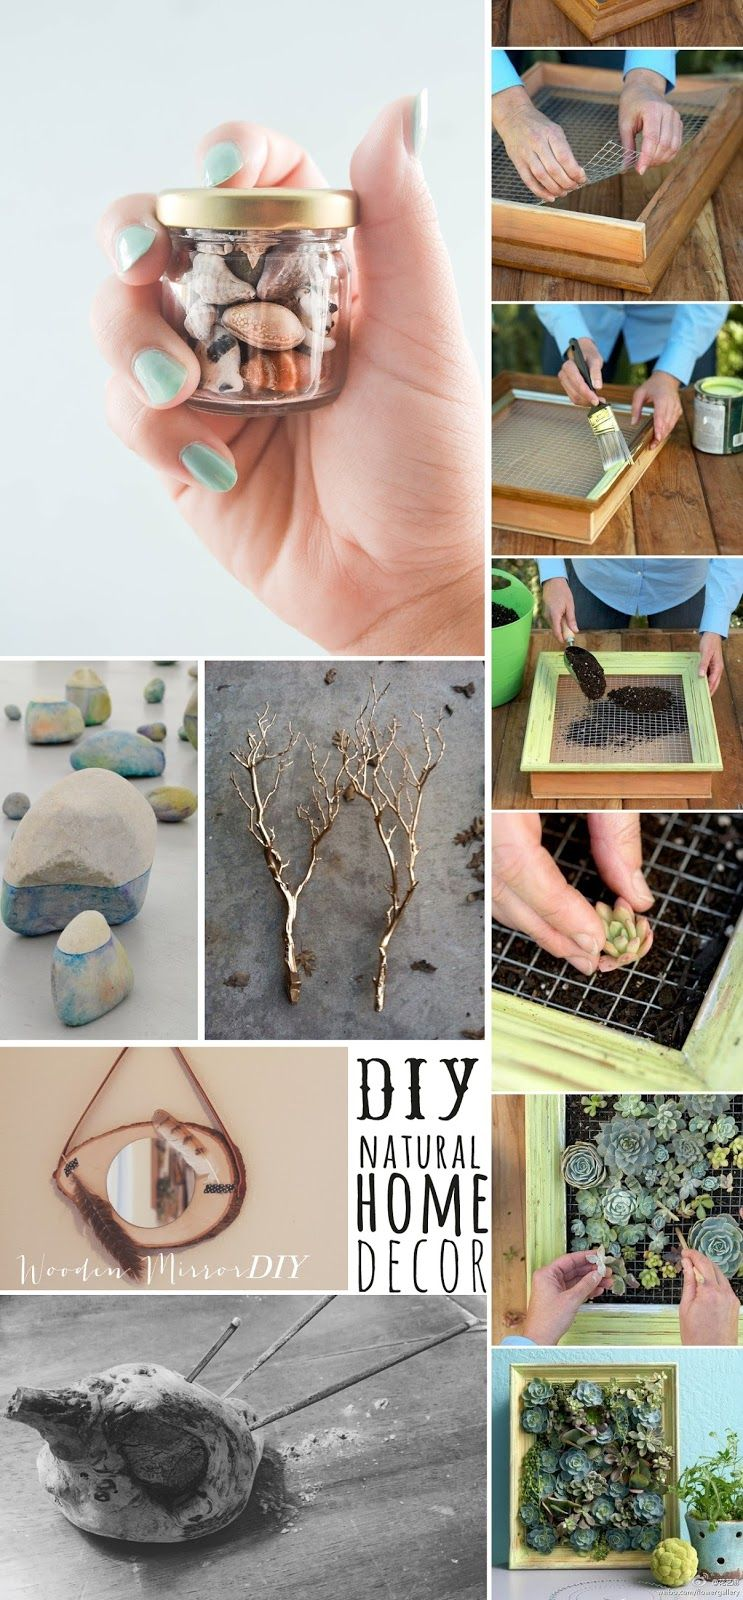 Sea Field And Tribe Diy Natural Home Decor Natural Home Decor Diy Dream Home Creative Home Decor